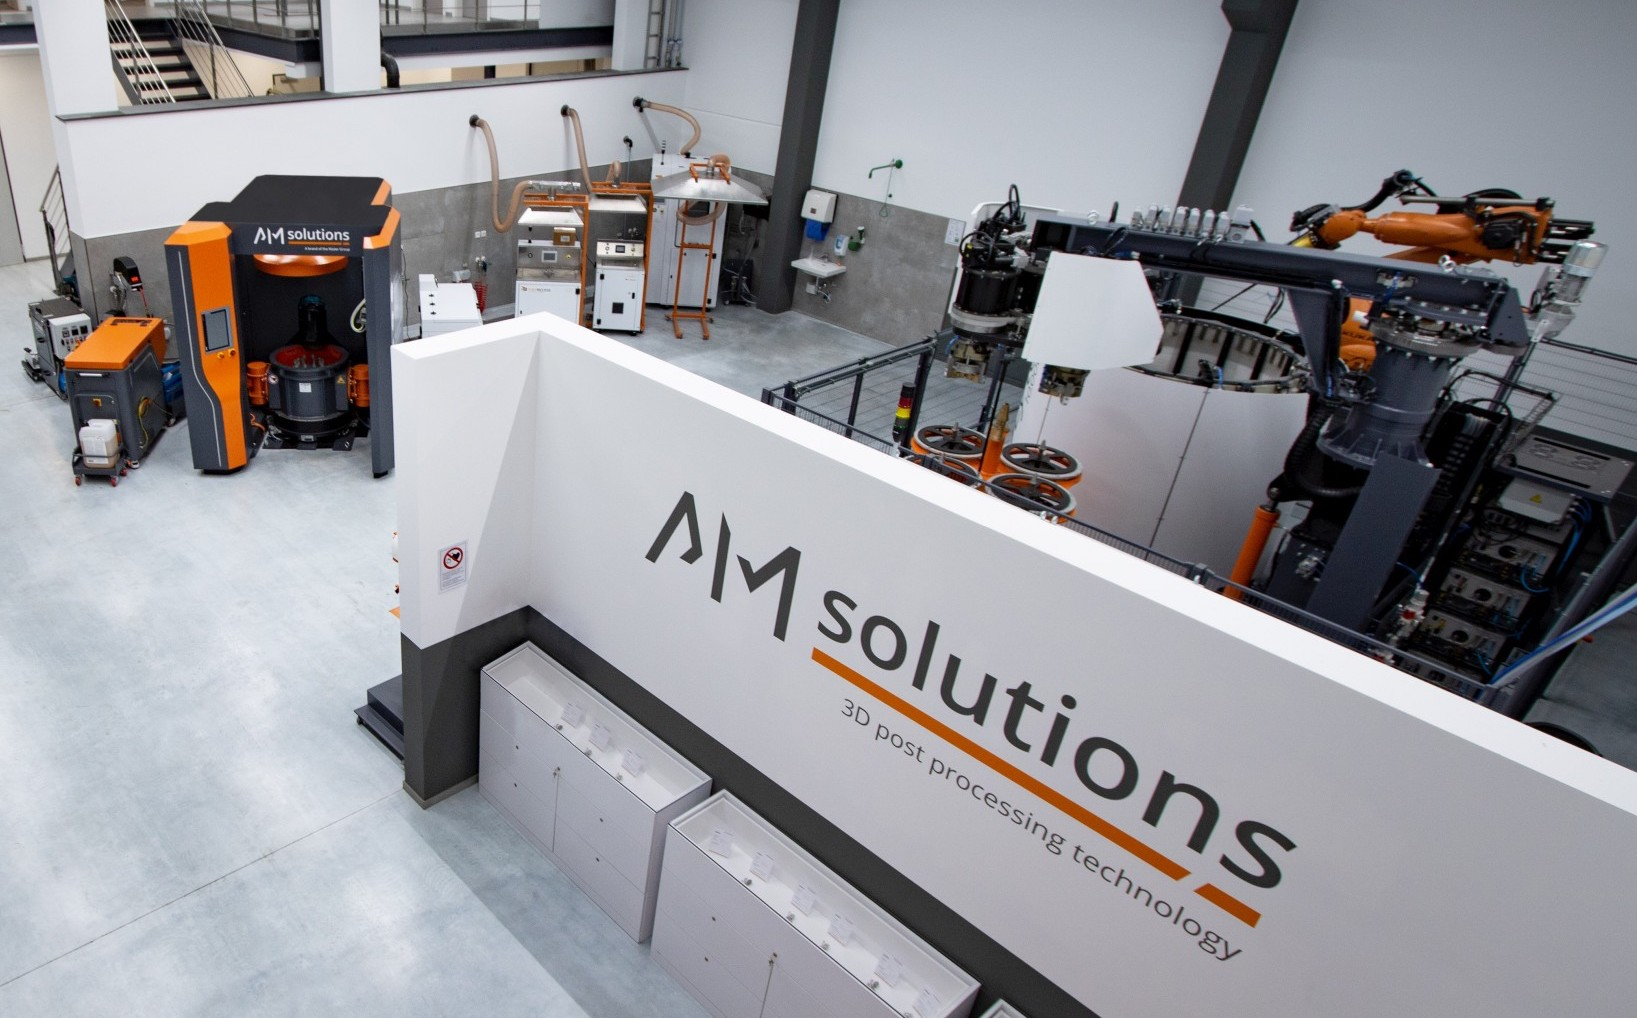 AM Solutions' new facility has been built with a focus on providing an optimized post-processing service to its clients. Photo via the Roesler Group.